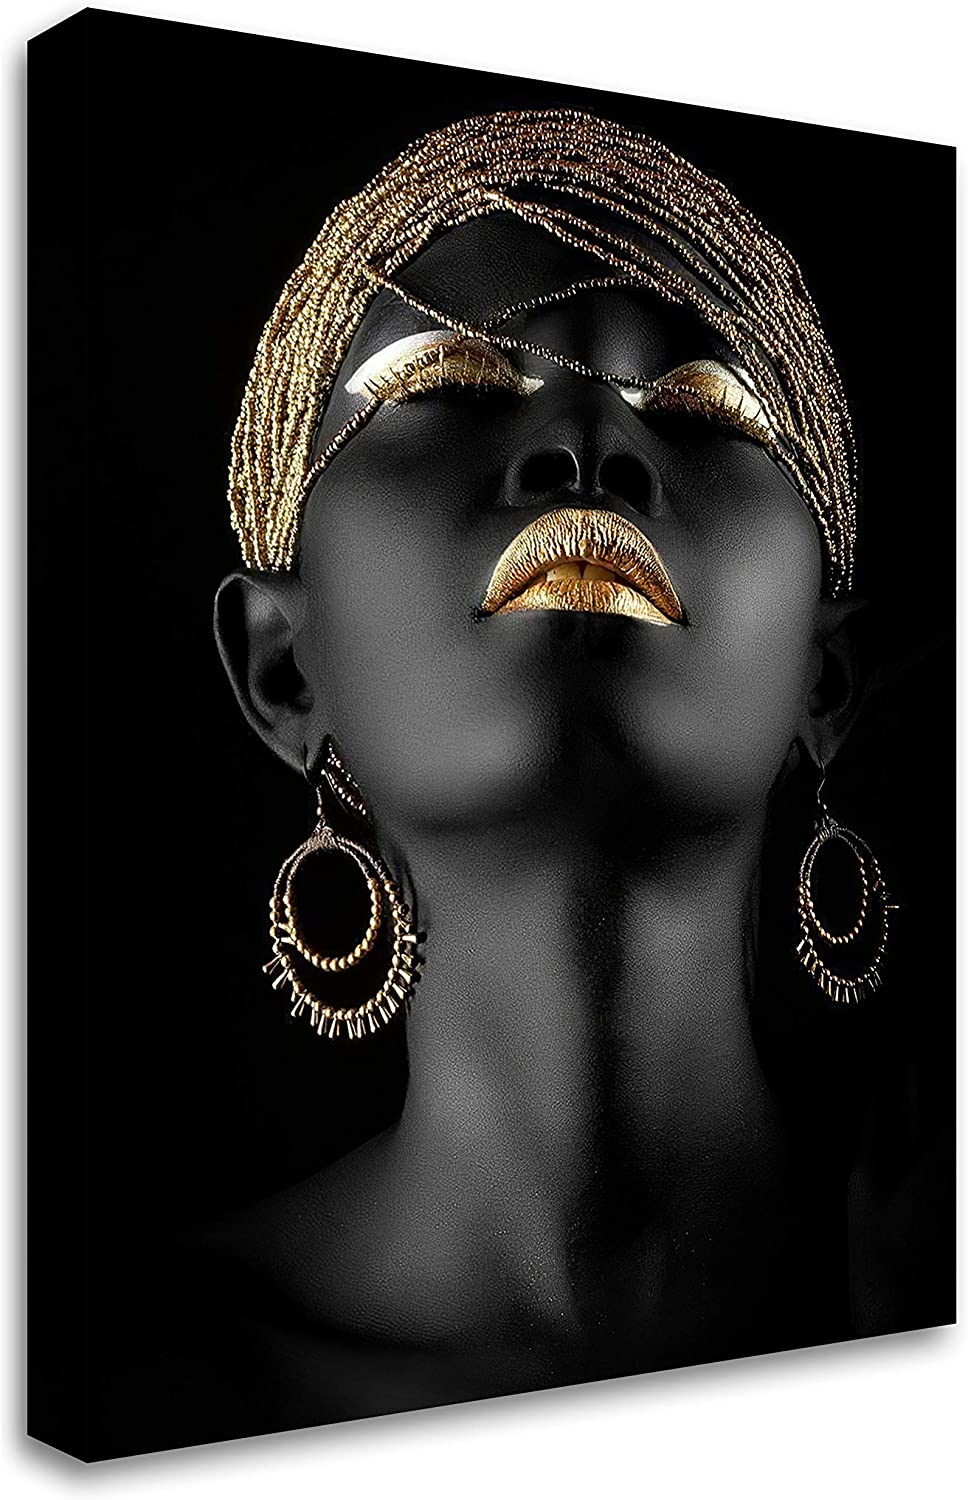 African Golden Black Girl Wall Art Prints Painting Wall Decor Women Canvas African American Wall Art For Living Room Bedroom Office Home Decor 12x16inch